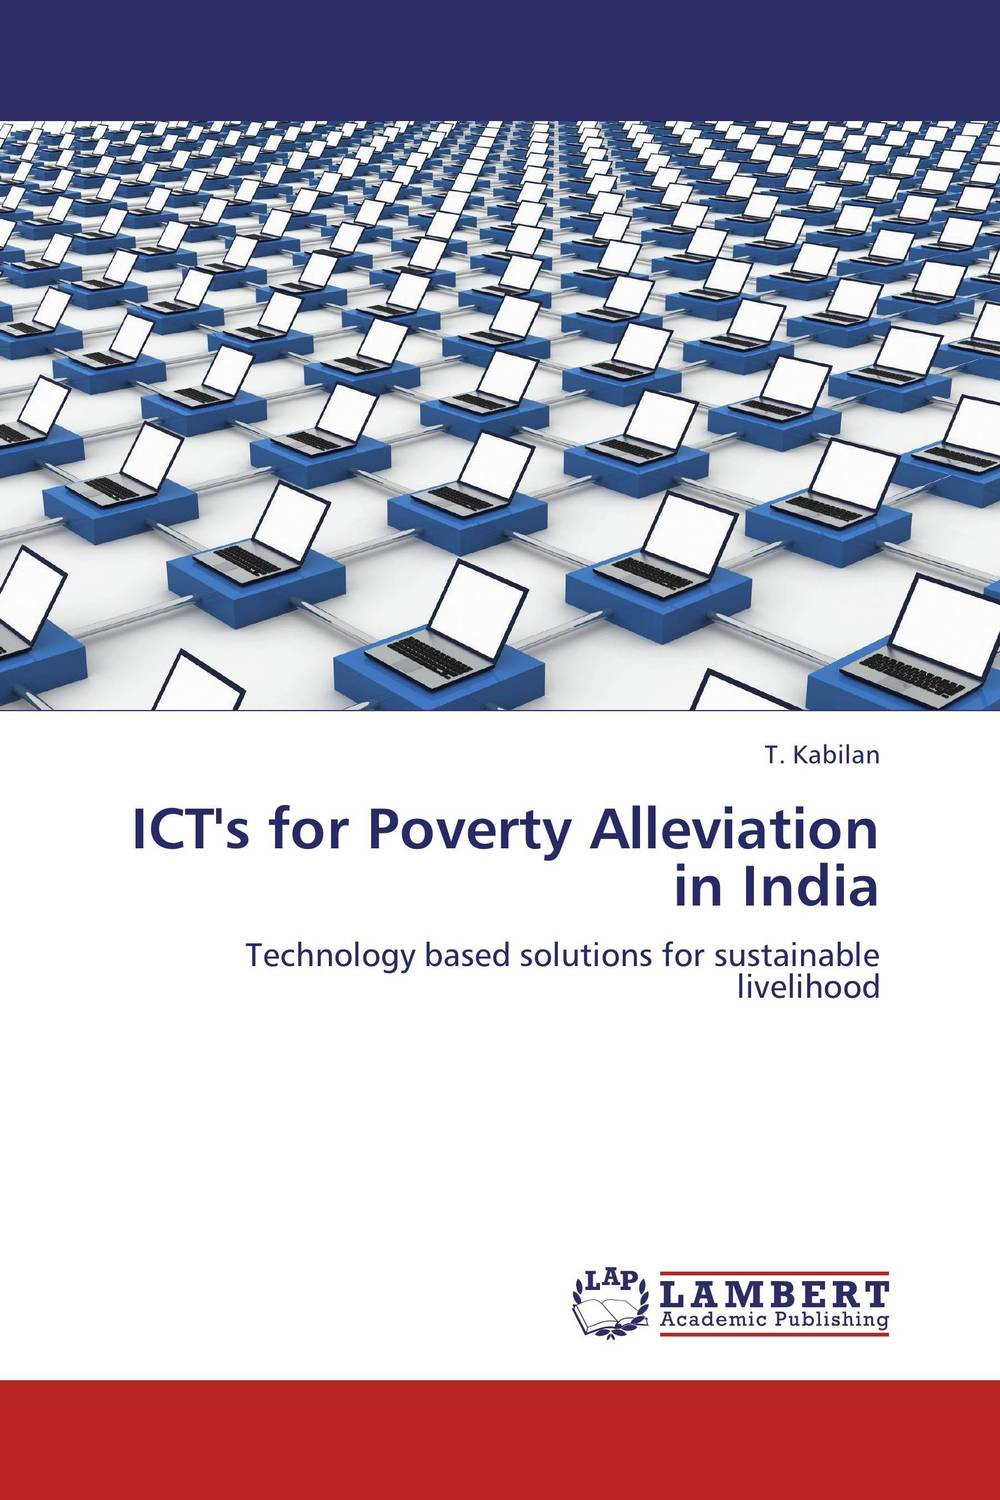 ICT's for Poverty Alleviation in India role of ict in rural poverty alleviation